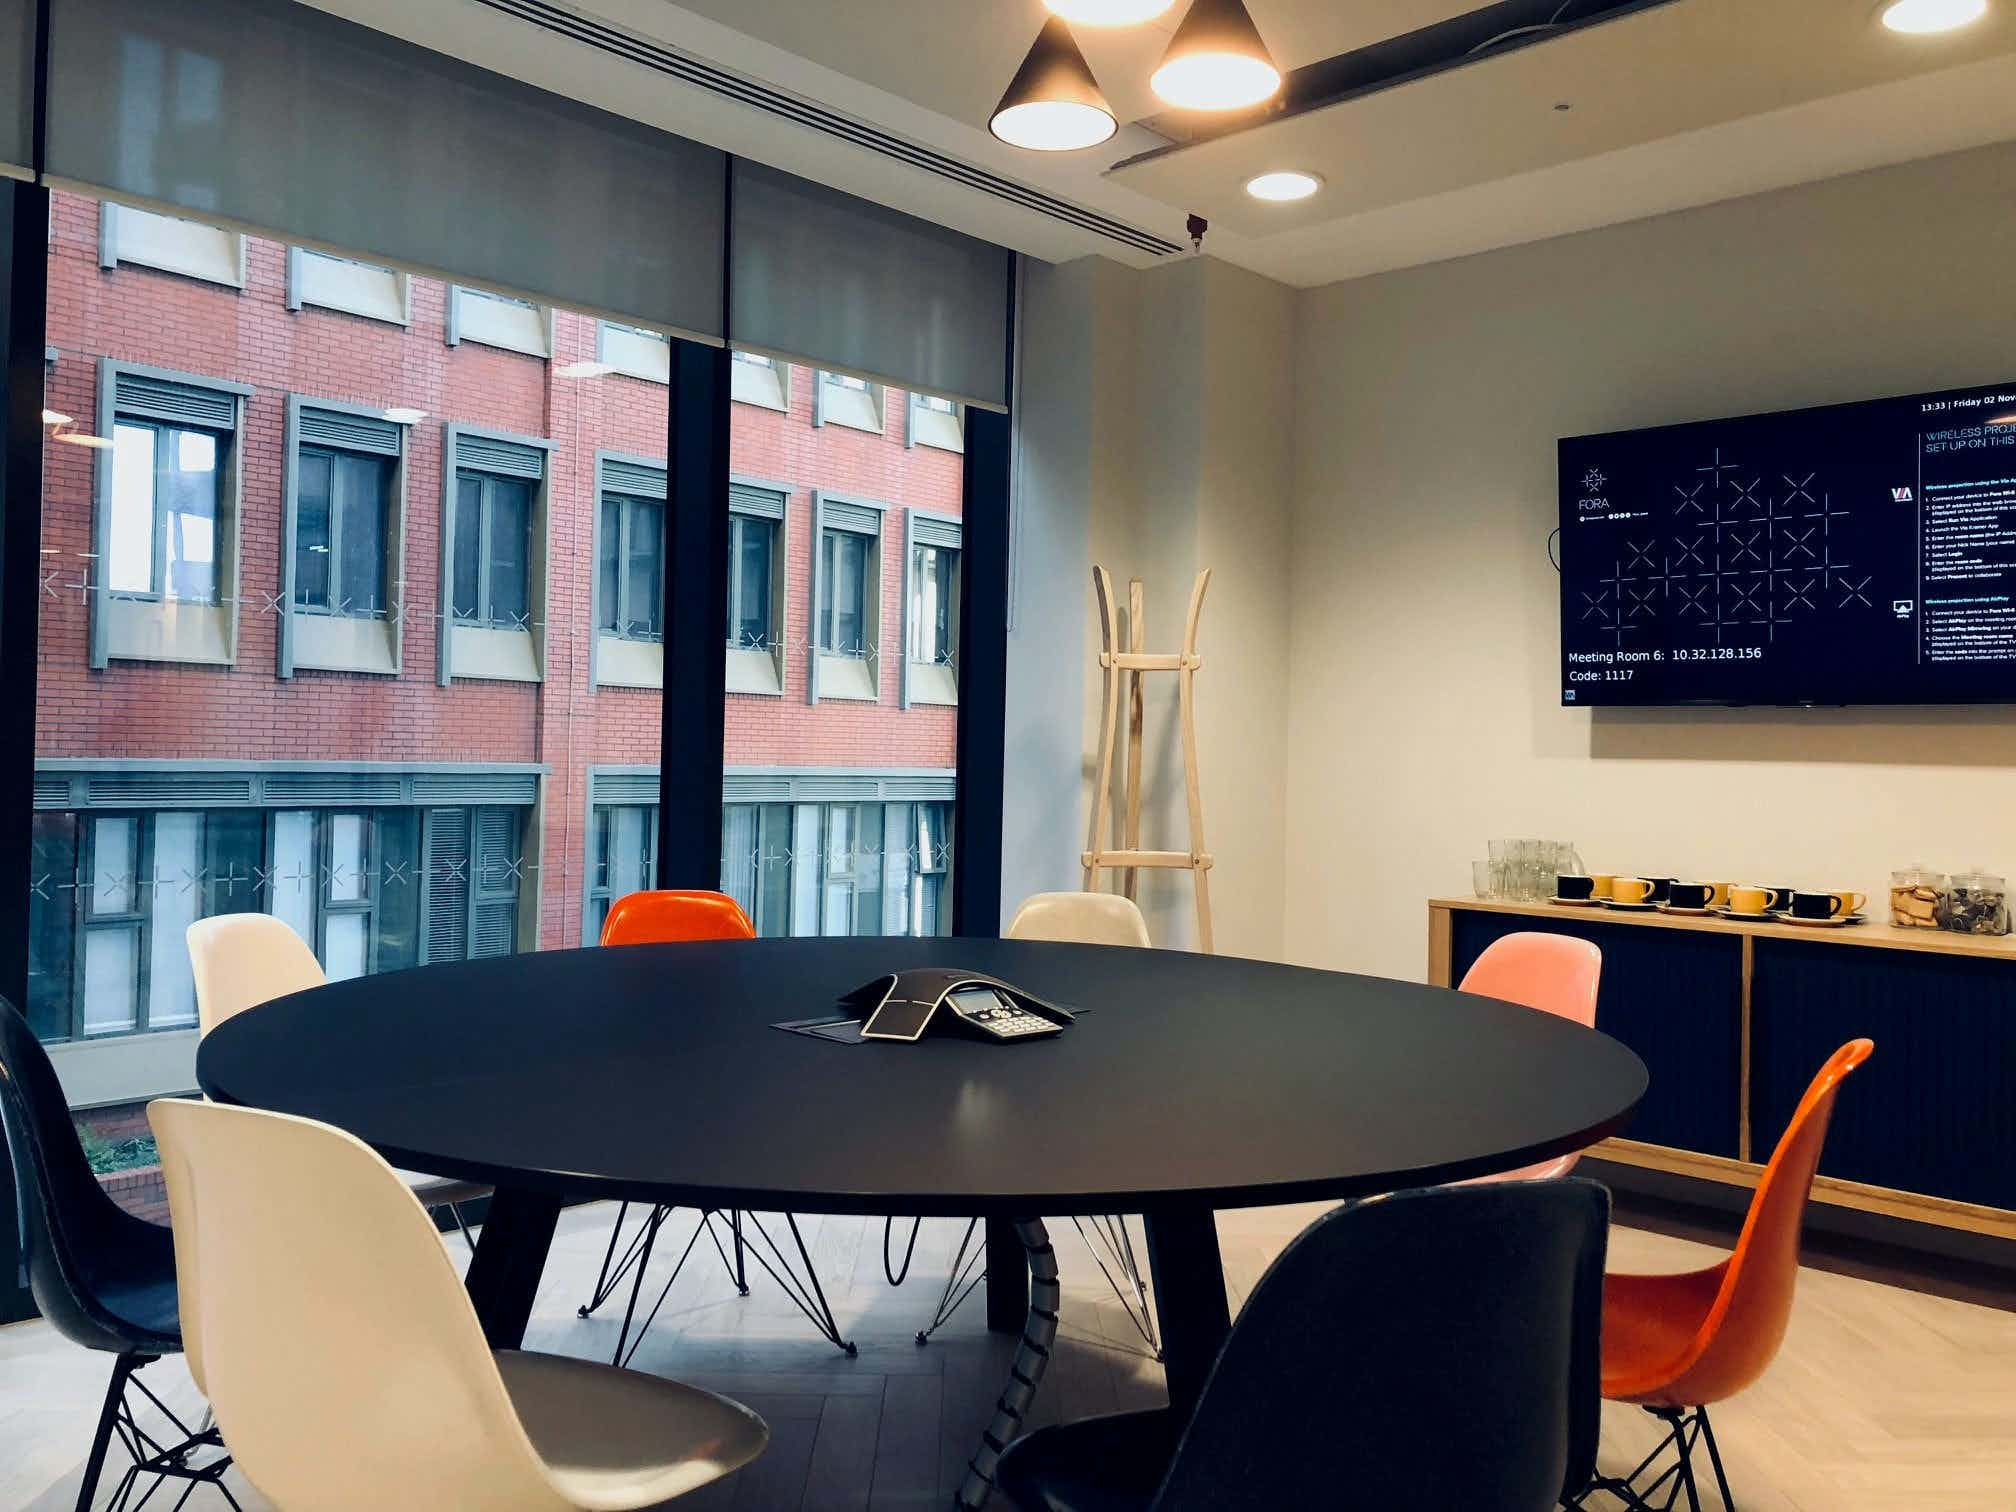 Meeting Room 6, Fora Reading